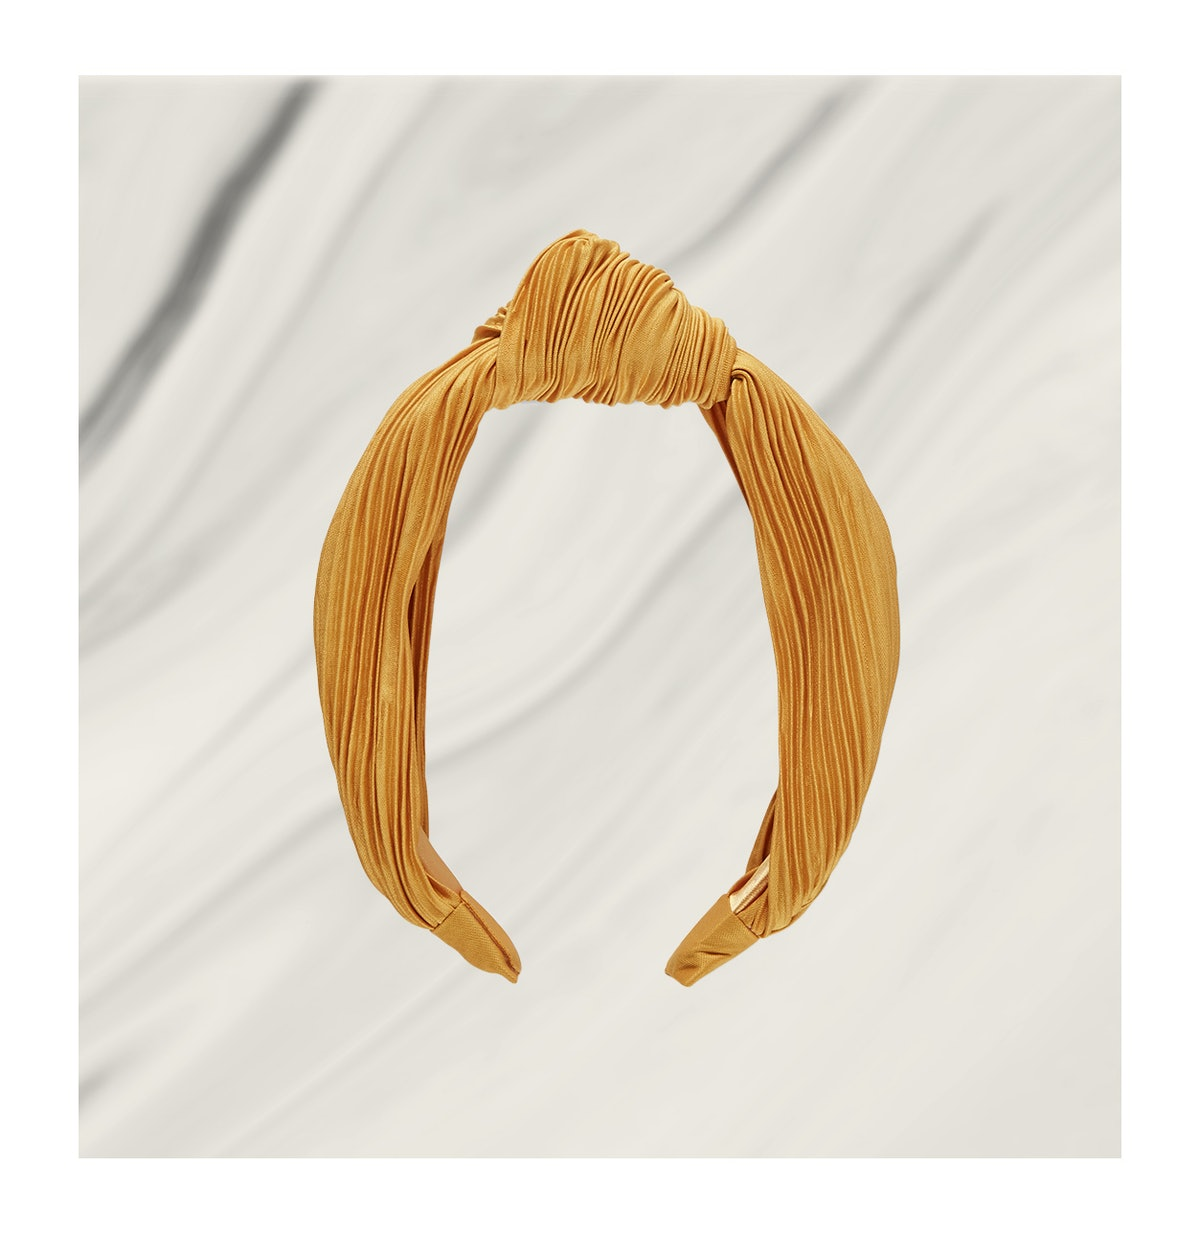 Knotted Headband for Hair